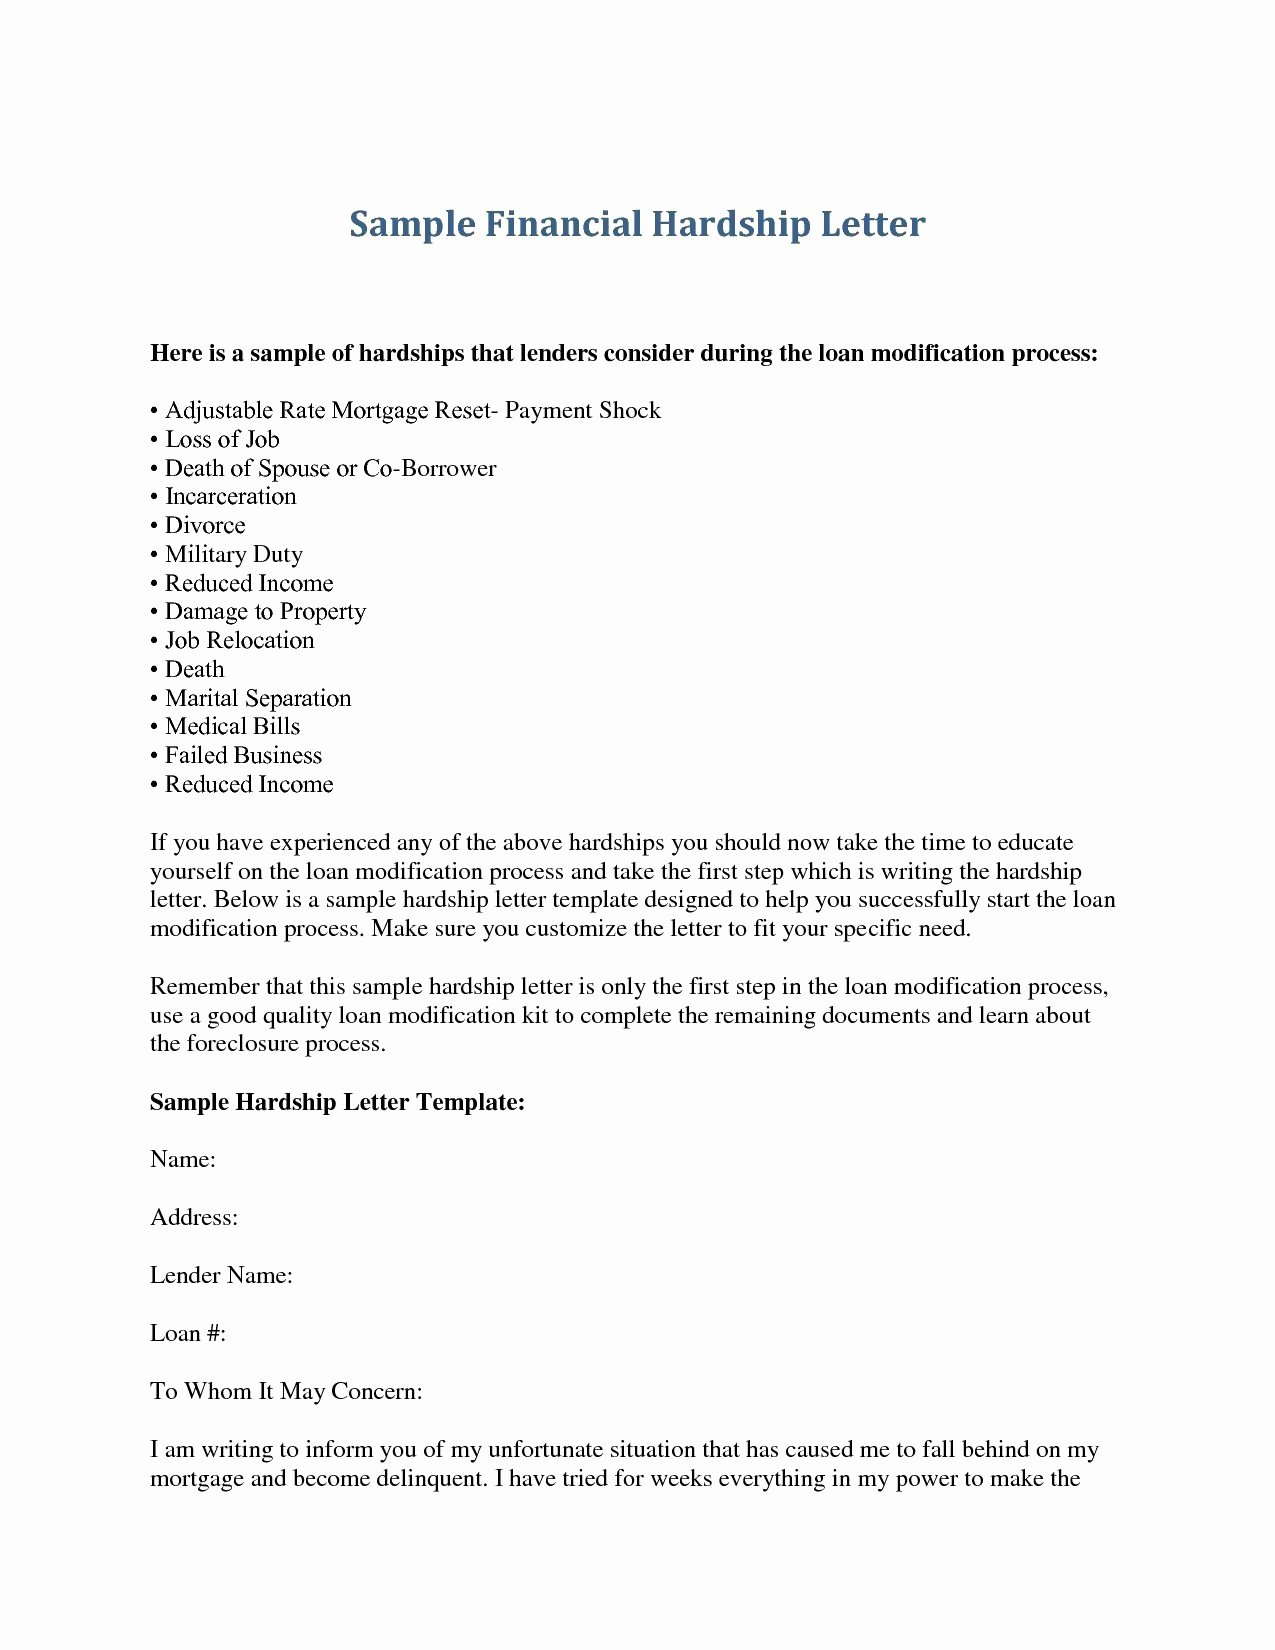 Sample Payment Shock Letter New Mortgage Payment Shock Letter Template Collection